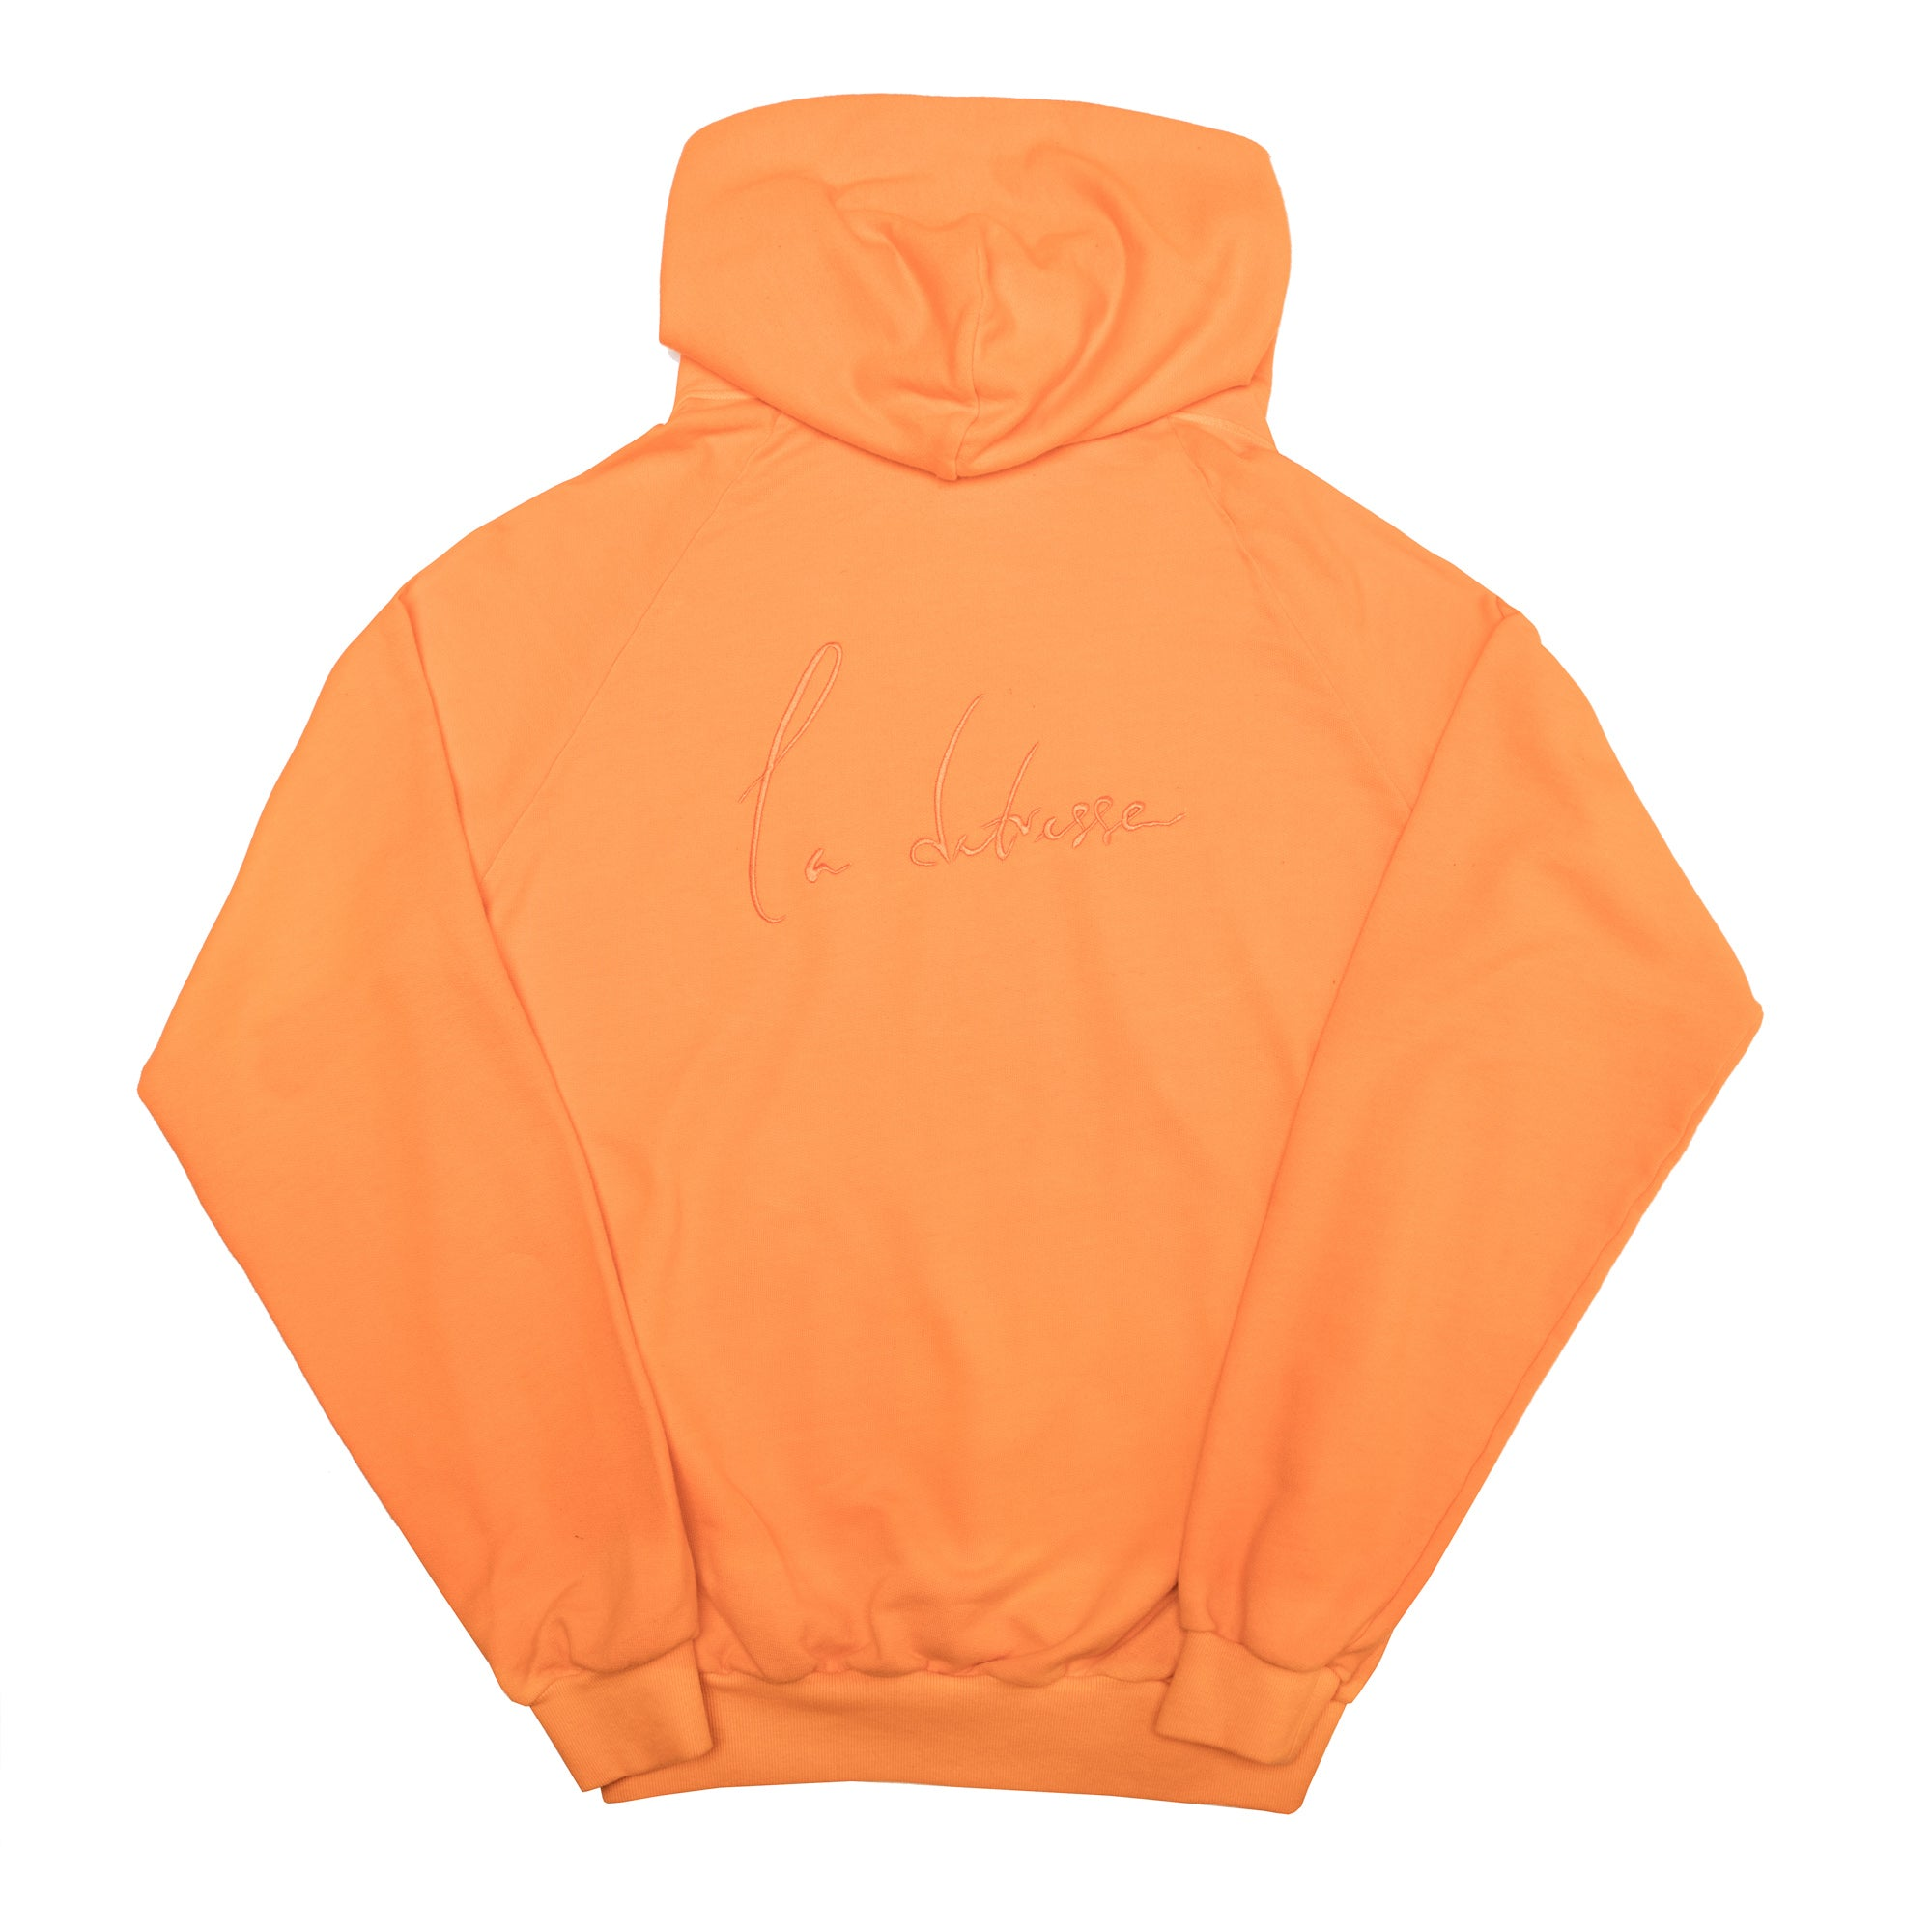 The Orange Hoodie